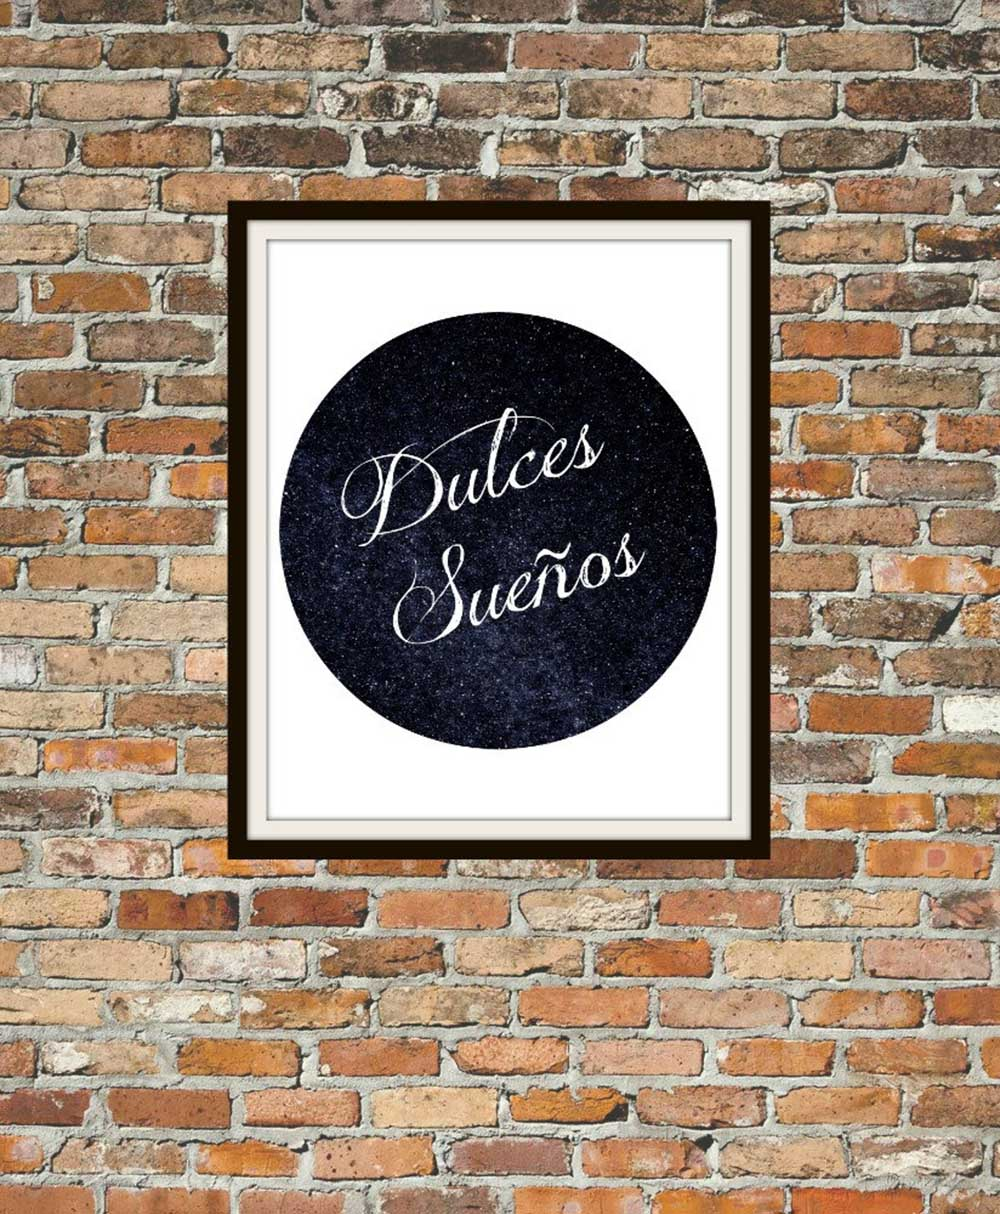 dulces-sueños-sweet-dreams-poster-in-spanish-quote-spanish-wall-art-poster-typography-spanish-wall-art-spanish-etsy-apartment-therapy-spanish-word-porn-spanish-immersion.jpg